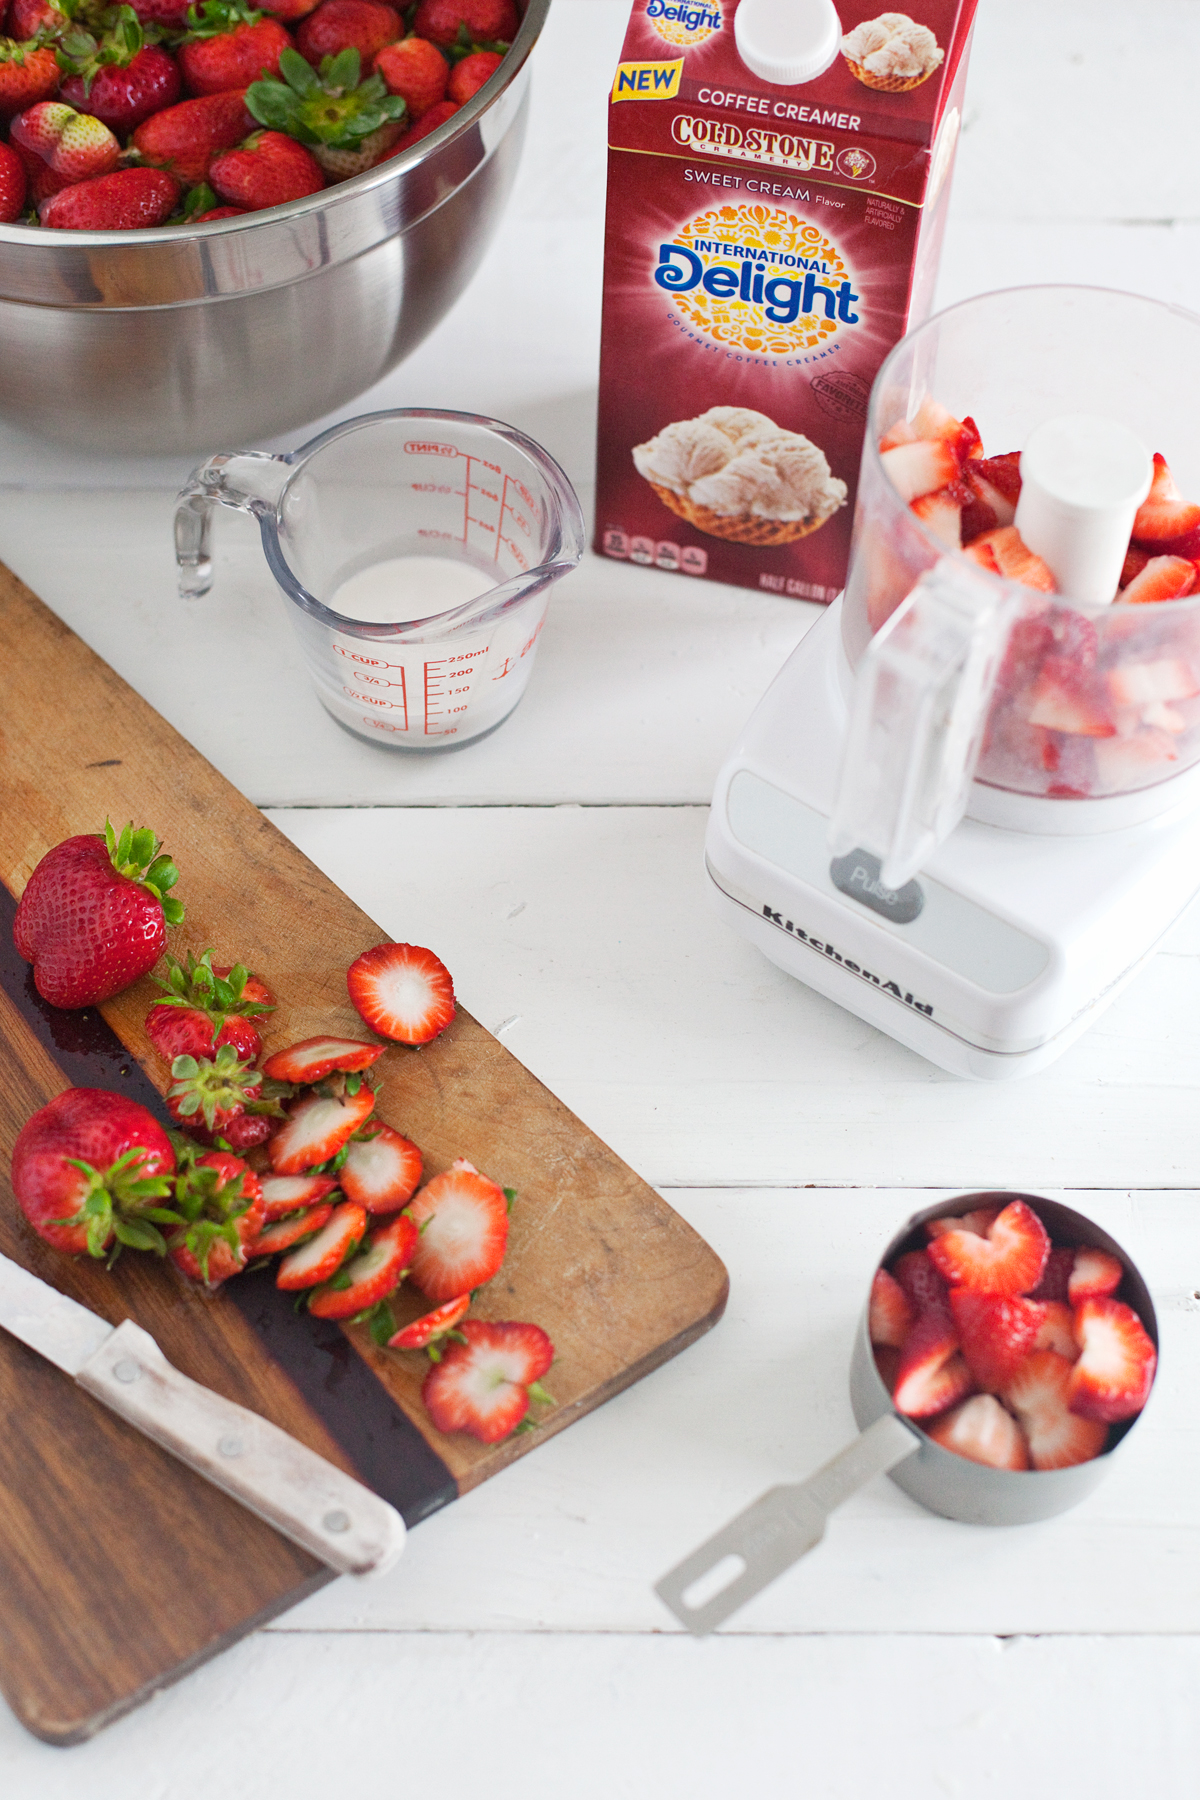 strawberries and cream oatmeal with International delight sweet cream